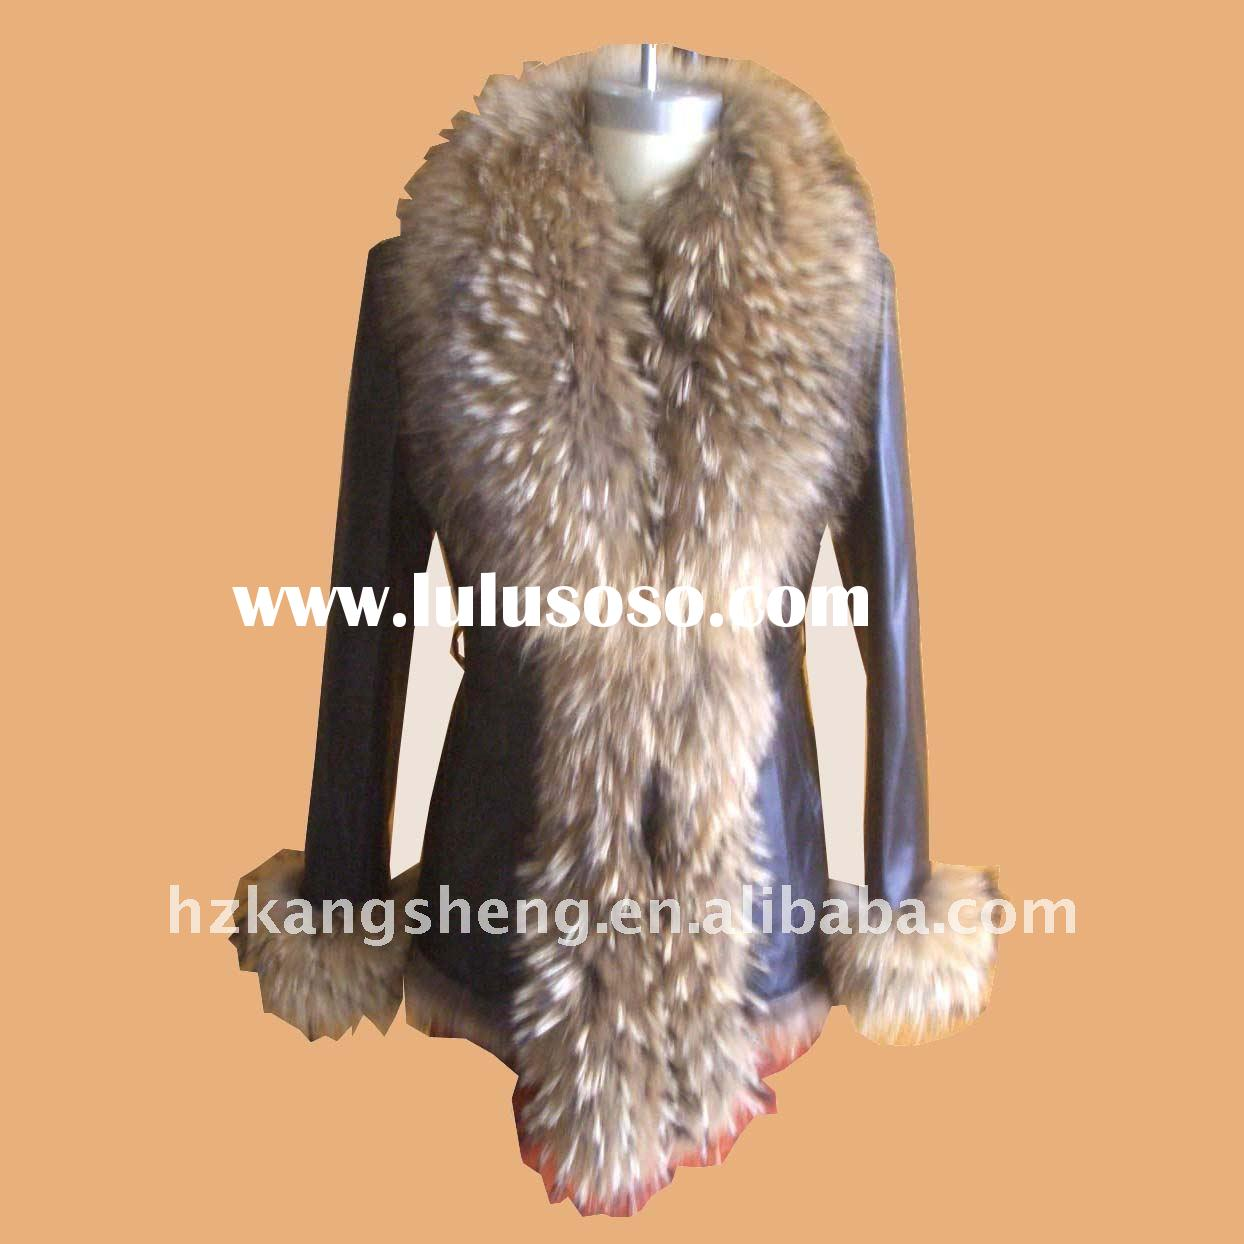 2012 100% GENUINE LEATHER JACKET,Ladies' Waxy Lamb Skin Garment,LEAHTER JACKET,LEATHER COAT